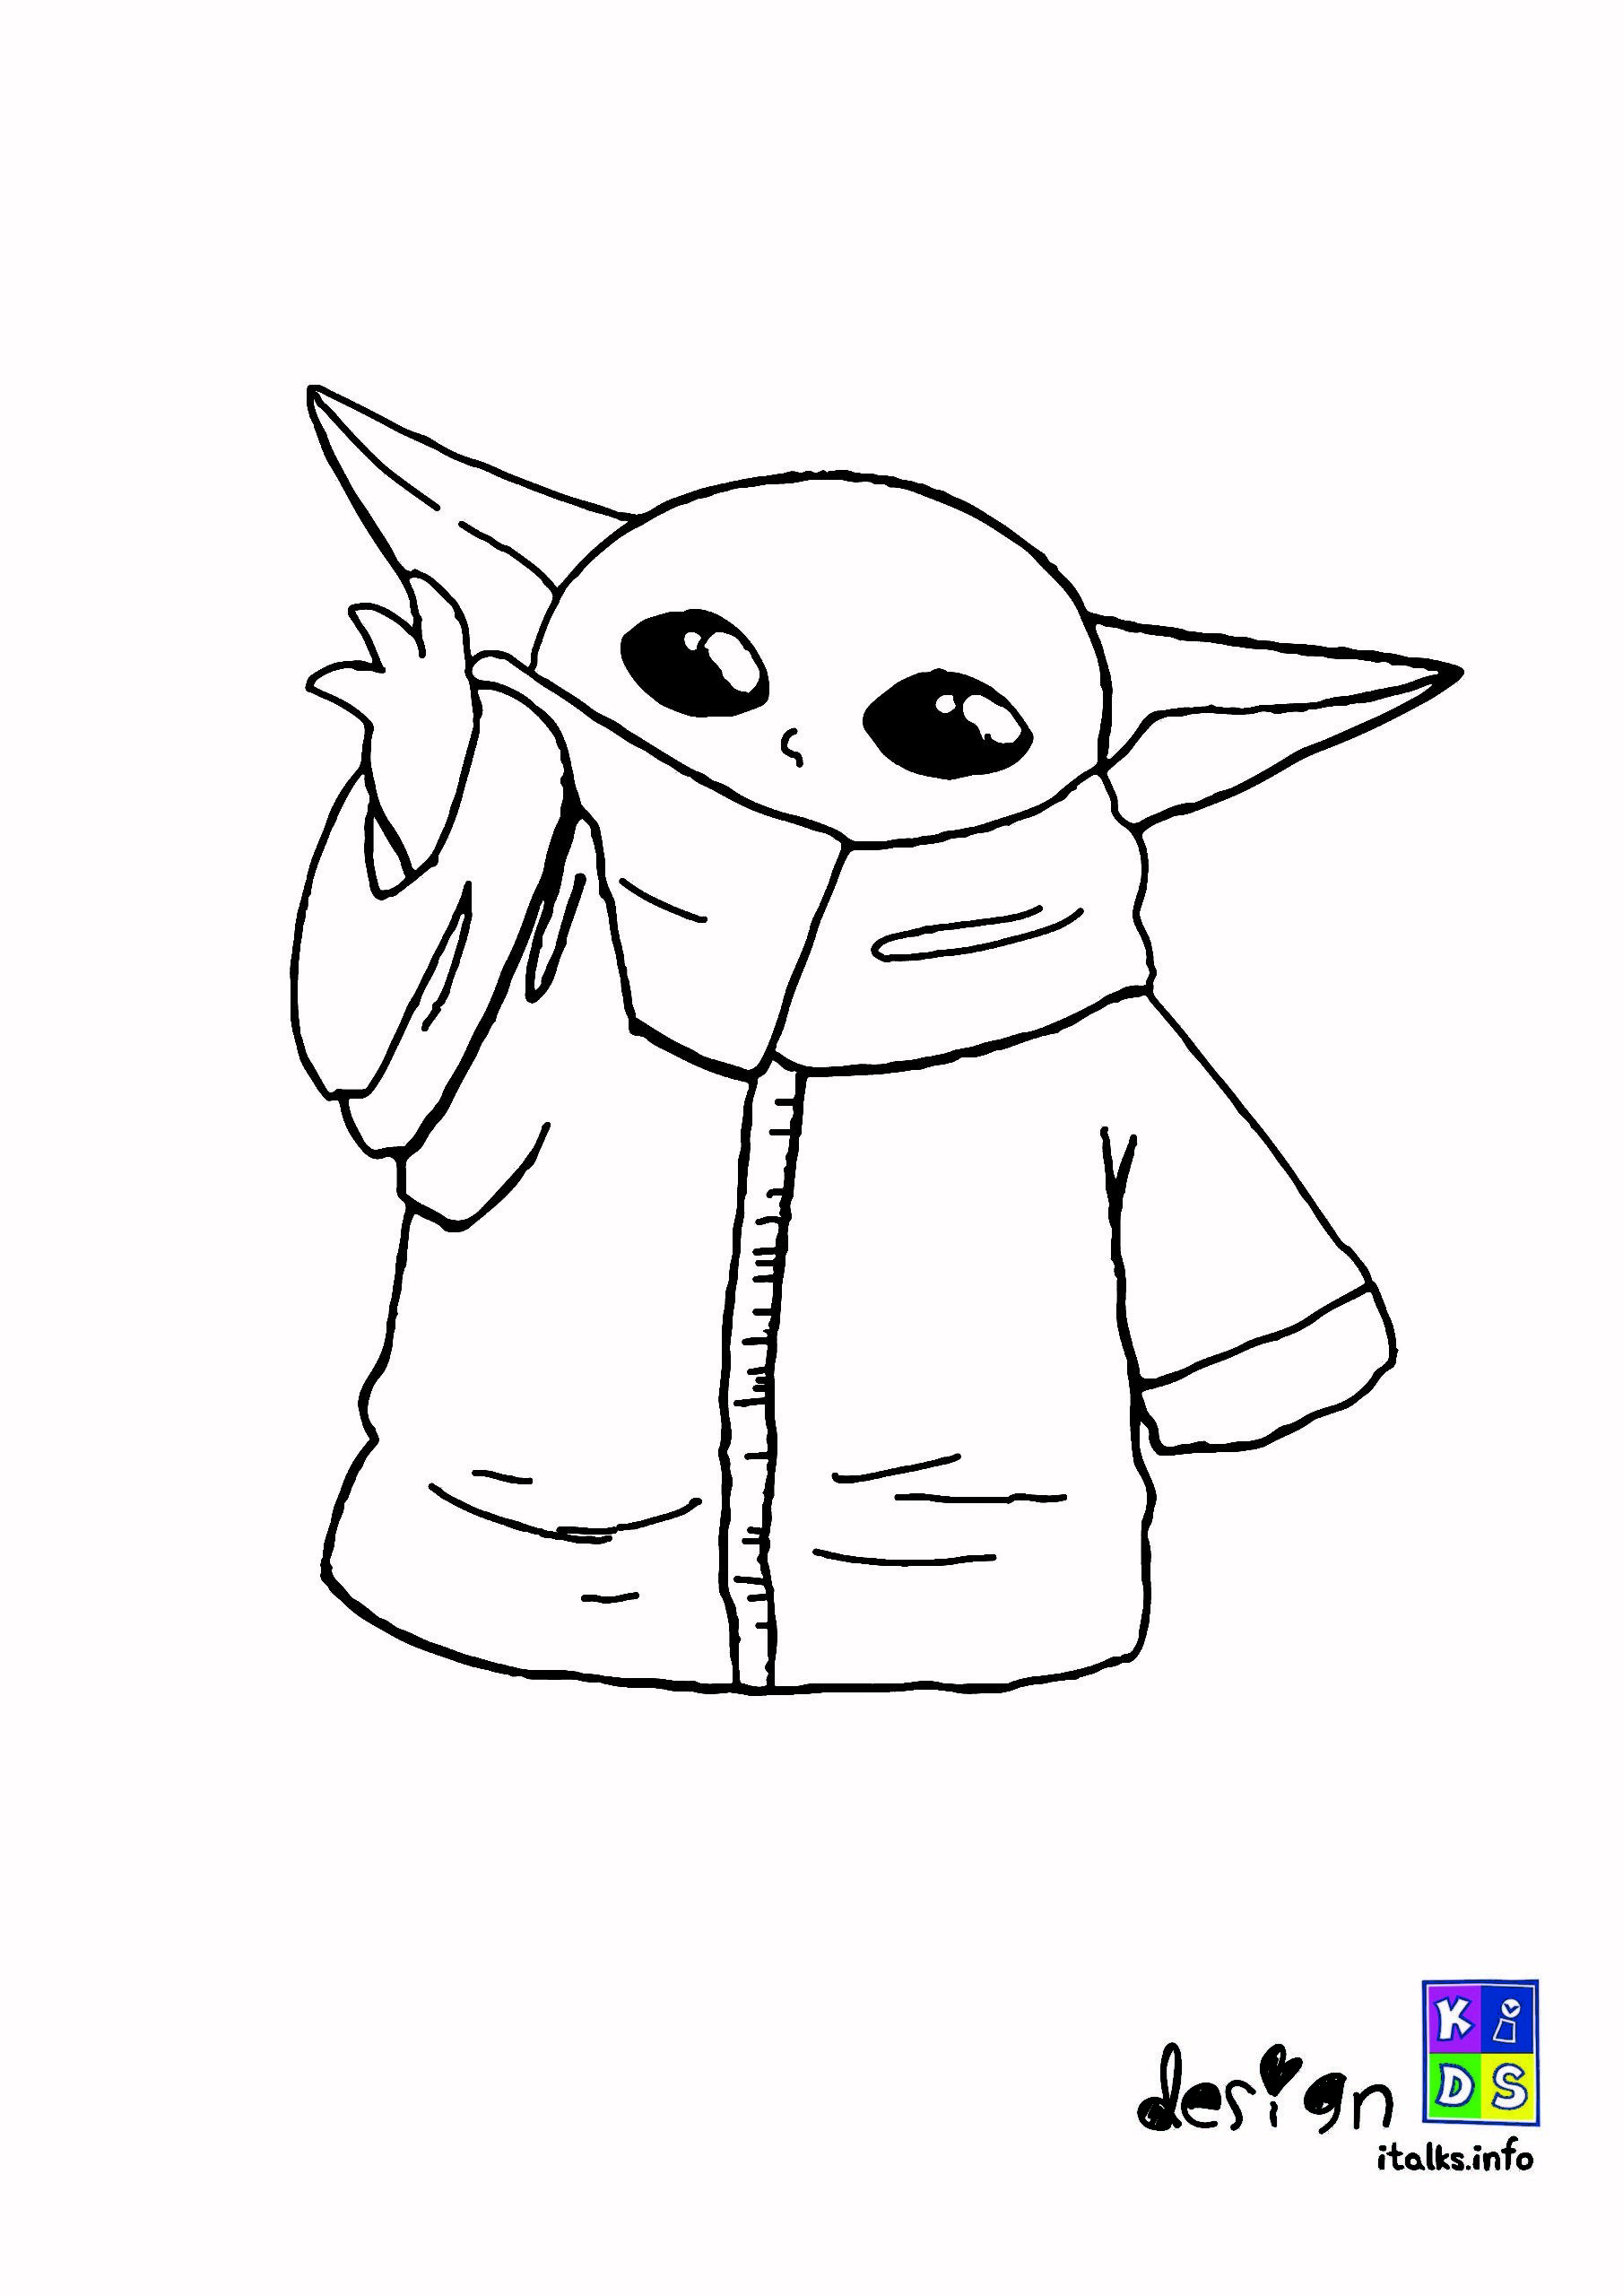 Baby Yoda Coloring Book Free Coloring Books Coloring Pages Coloring Pages For Kids